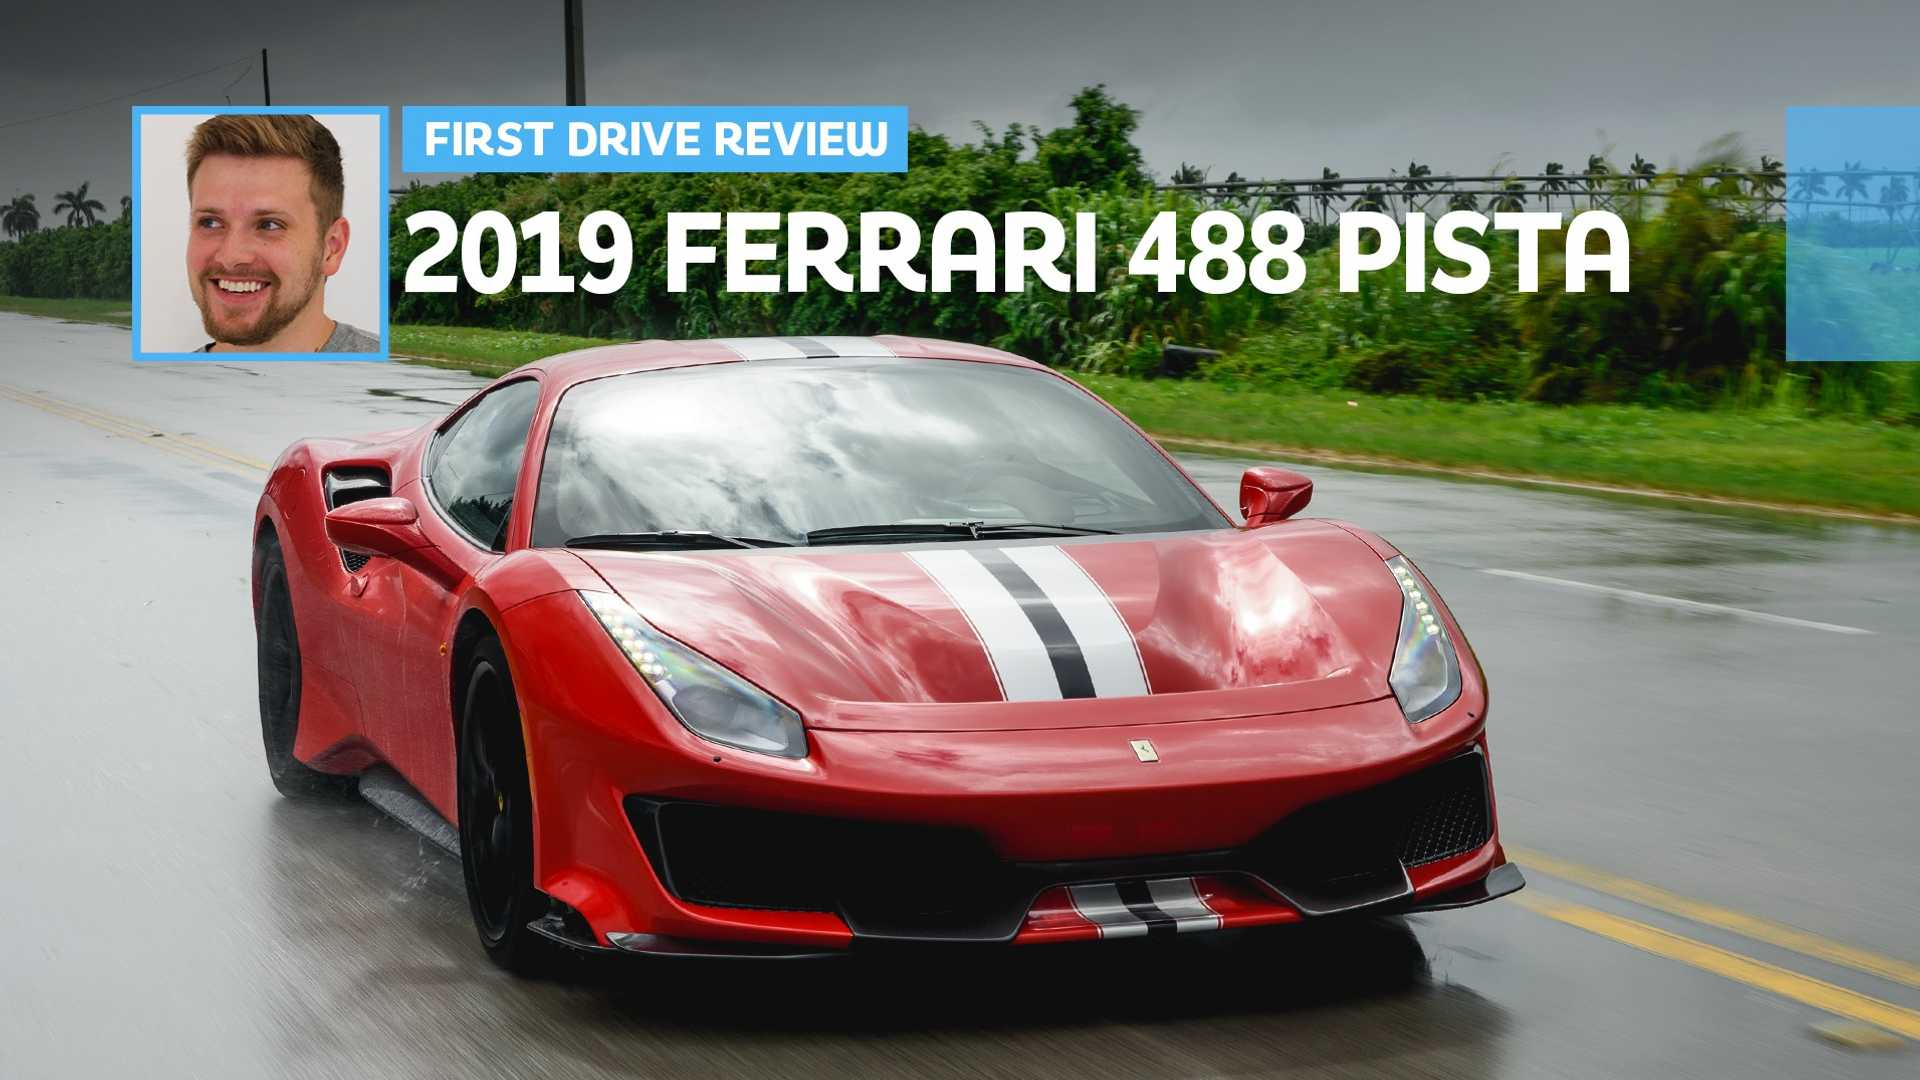 2019 Ferrari Cars Models And Prices Car And Driver >> 2019 Ferrari 488 Pista First Drive Proving What S Possible